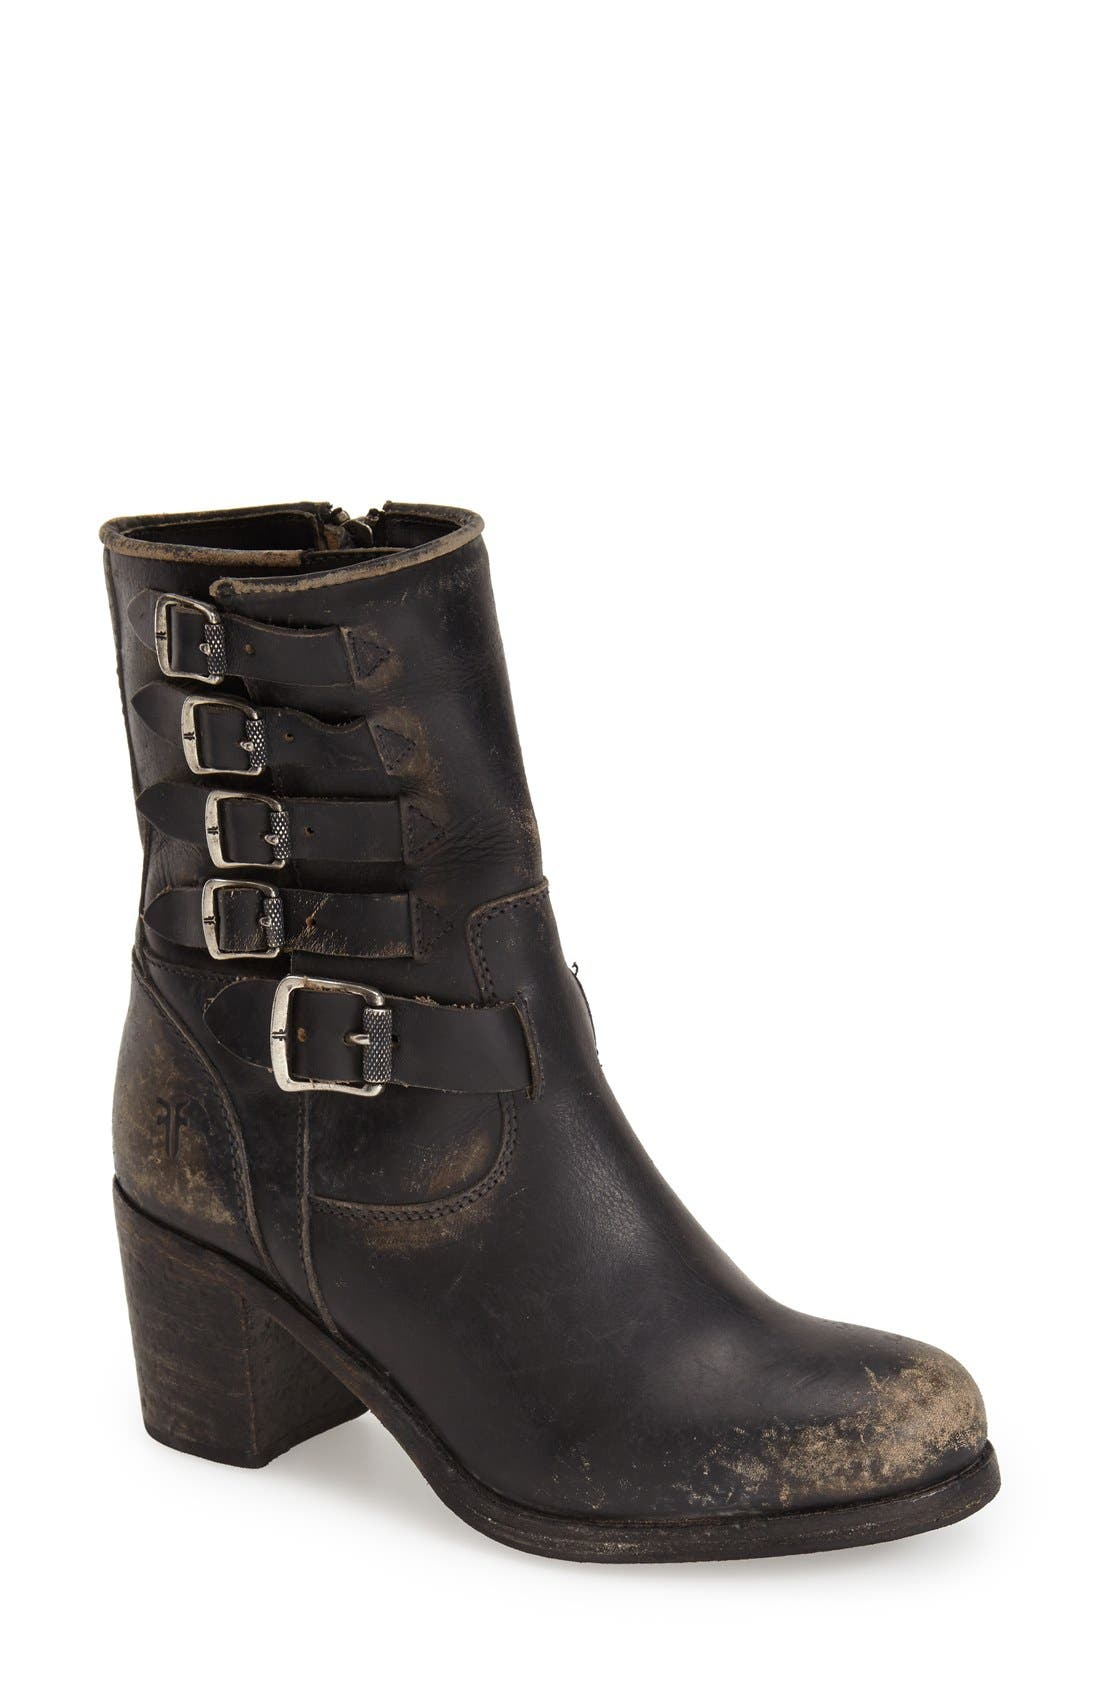 Alternate Image 1 Selected - Frye 'Kelly' Belted Short Boot (Women)